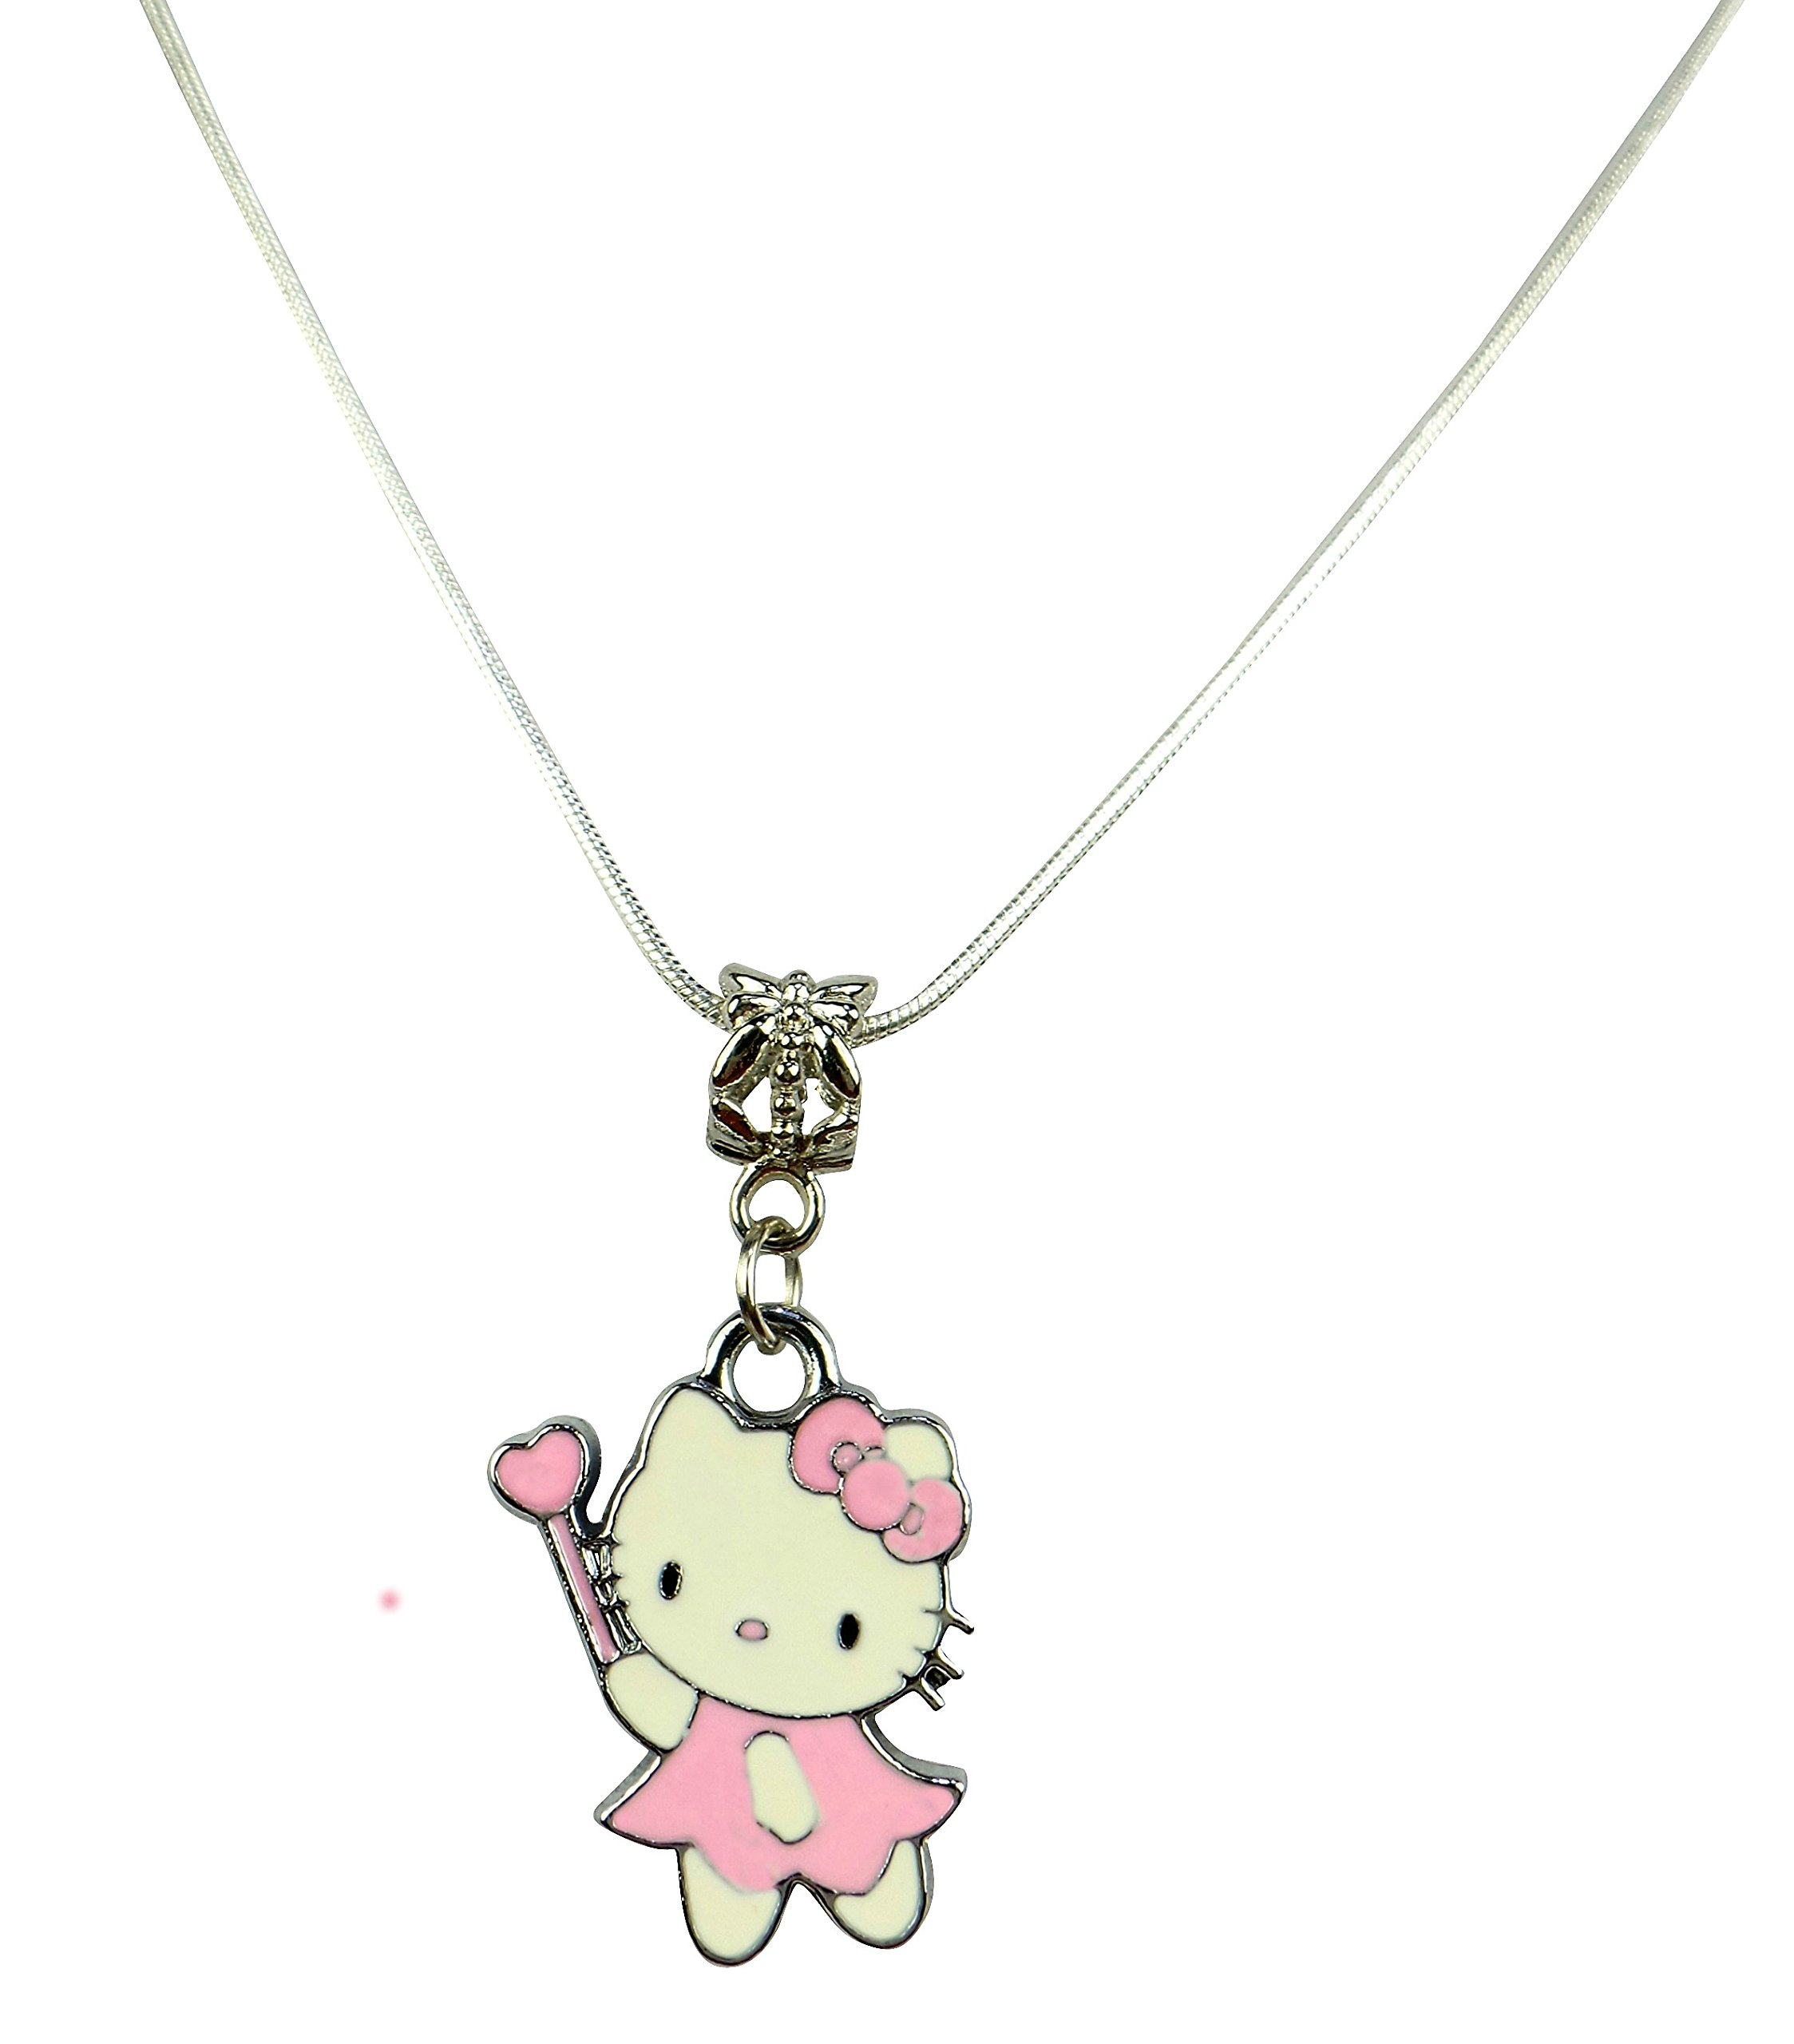 Beads R Us ® – Light Pink Enamel Hello Kitty Pendant on silver chain sizes 42cm, 46cm, 50cm, 60cm or 72cm available (72)